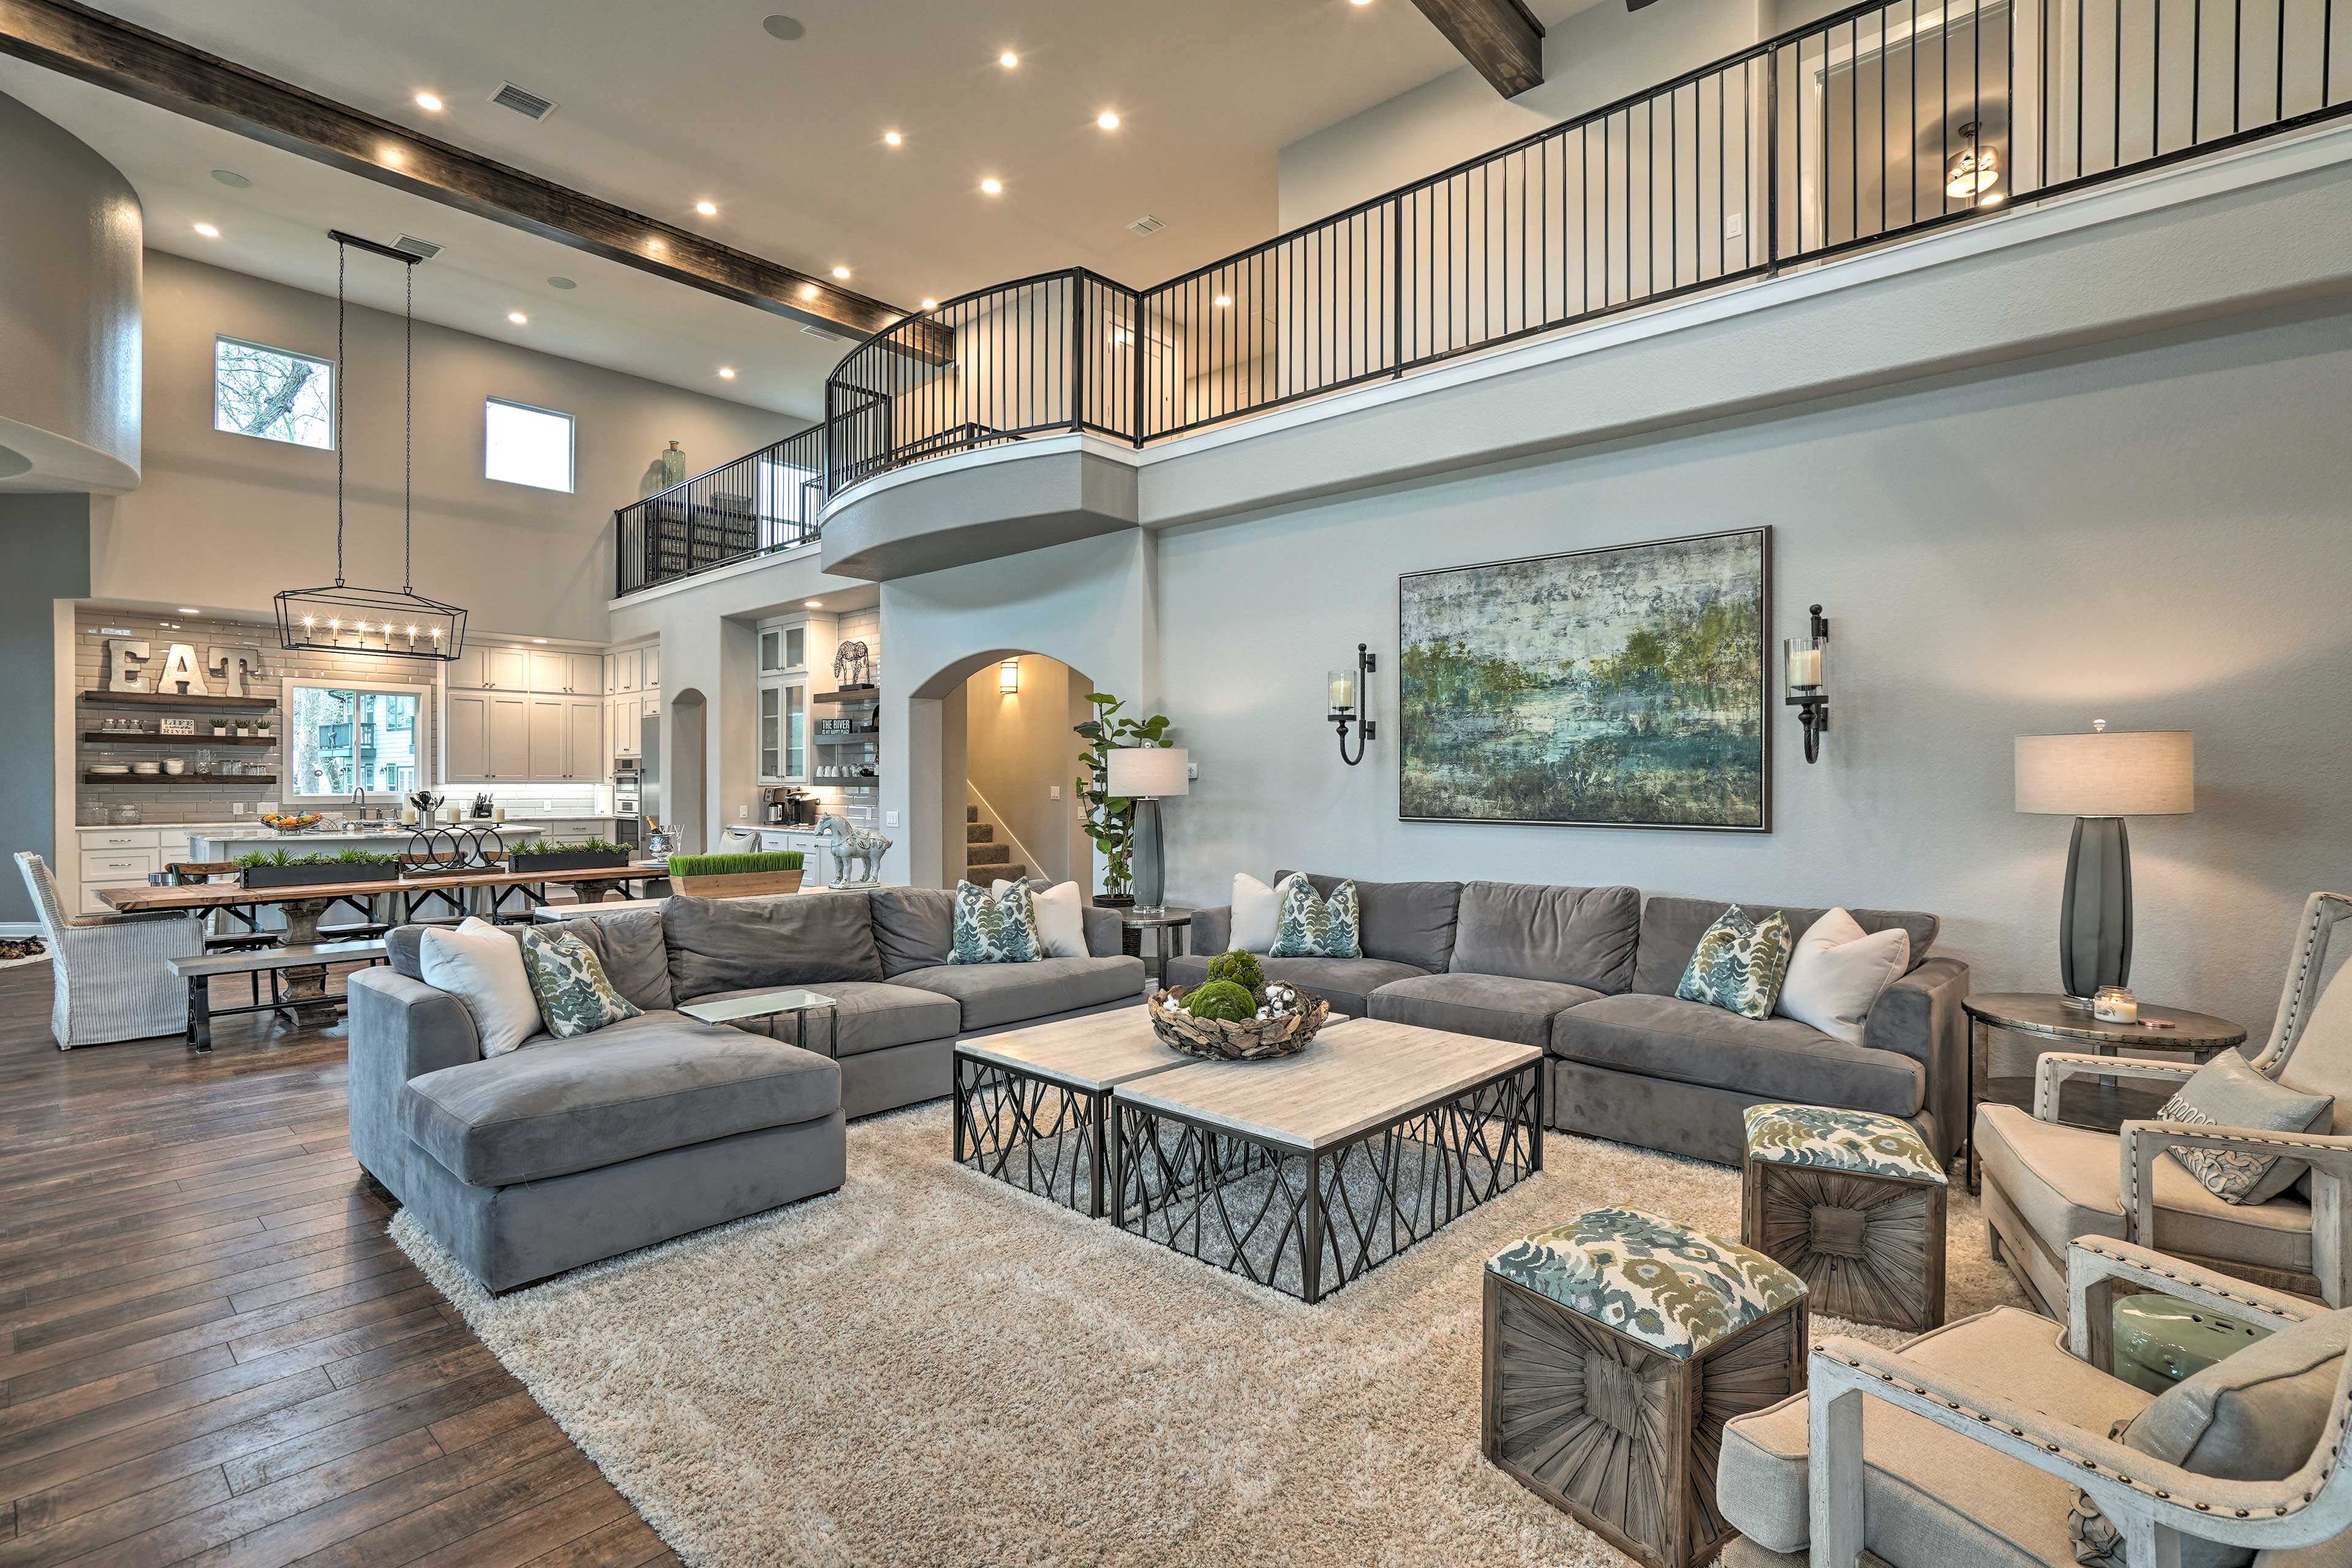 Live in luxury when you stay at this vacation rental house in Seguin, Texas.